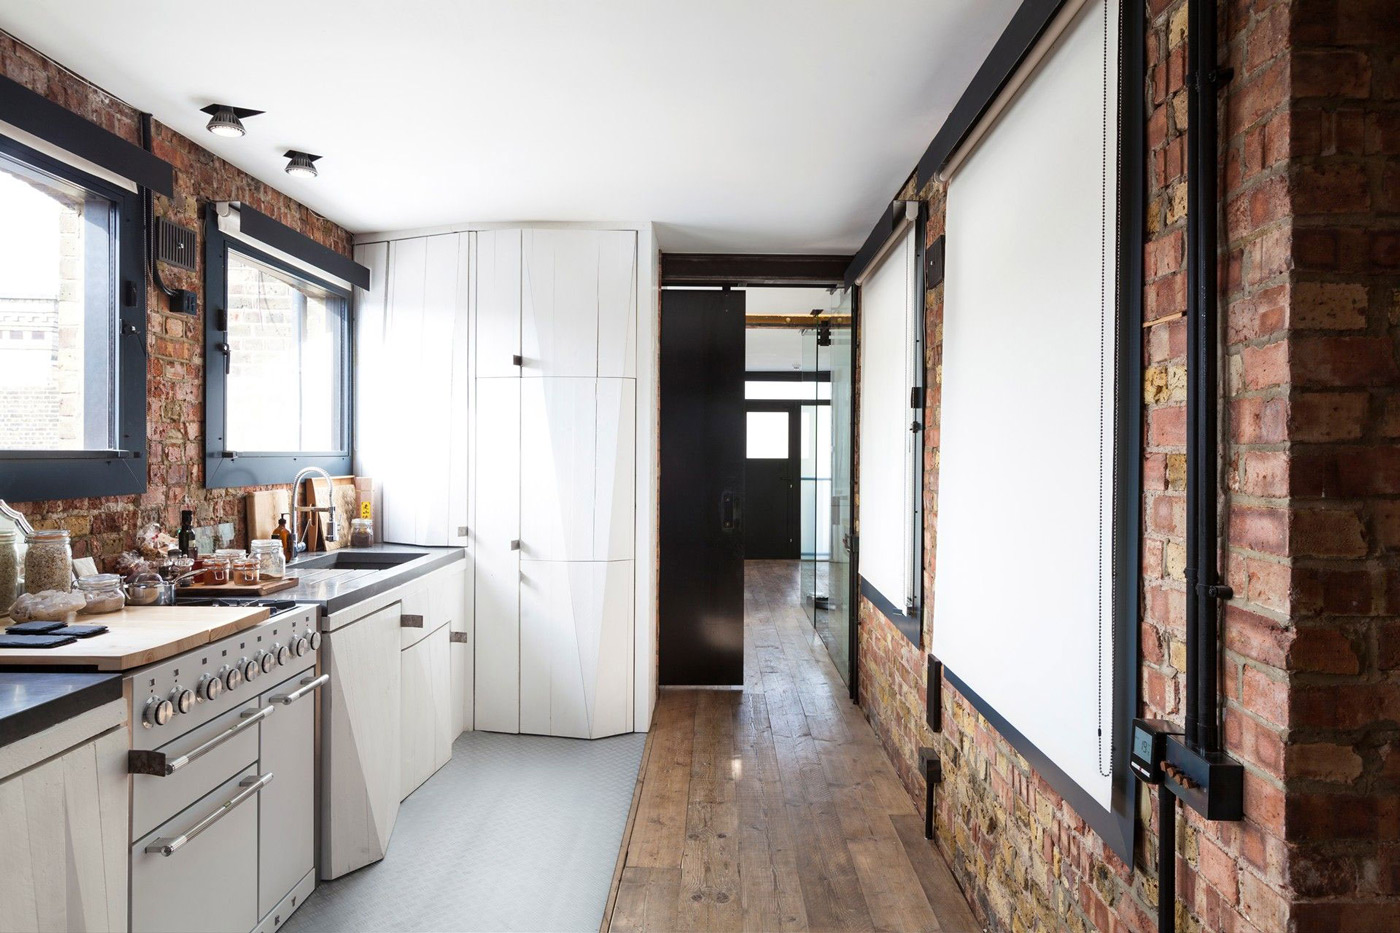 Kitchen, Wooden Flooring, Brick Walls, Archer Street Apartment in London, England